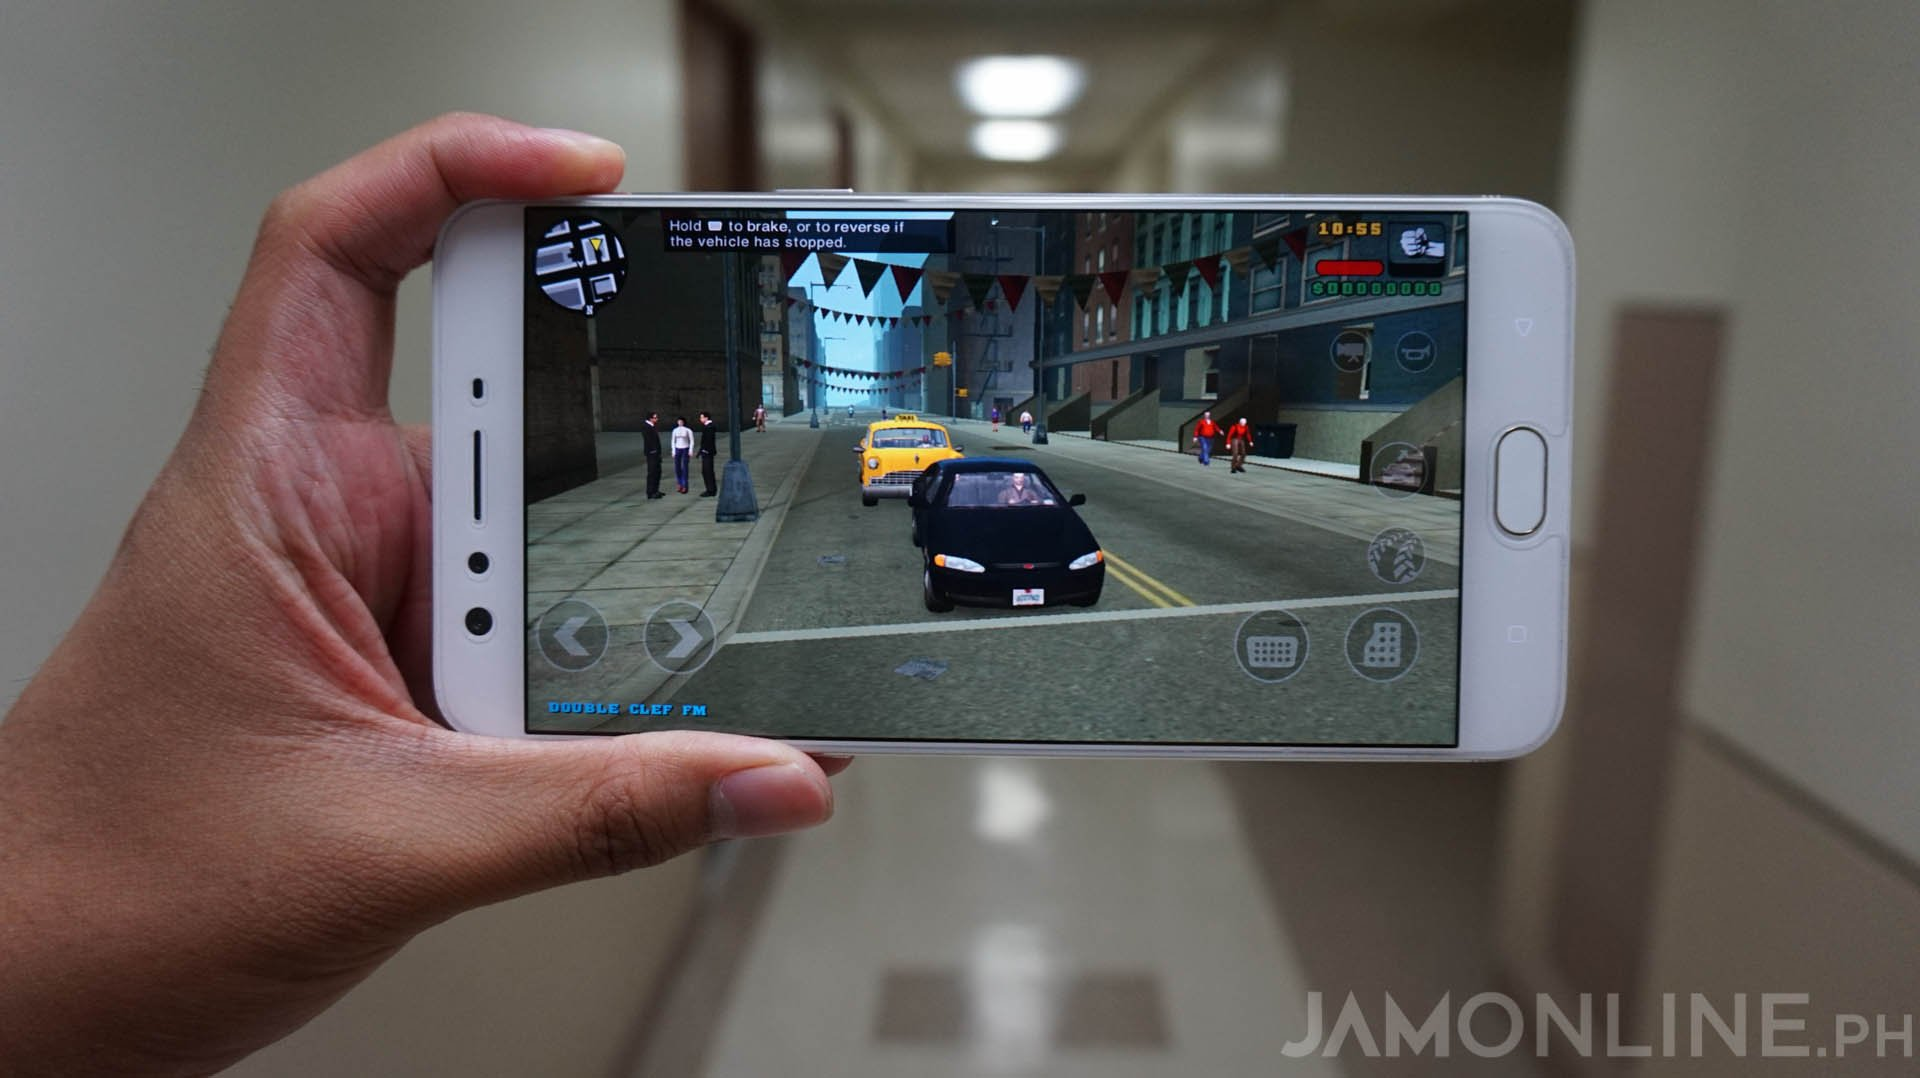 OPPO F3 Plus Review • Jam Online | Philippines Tech News